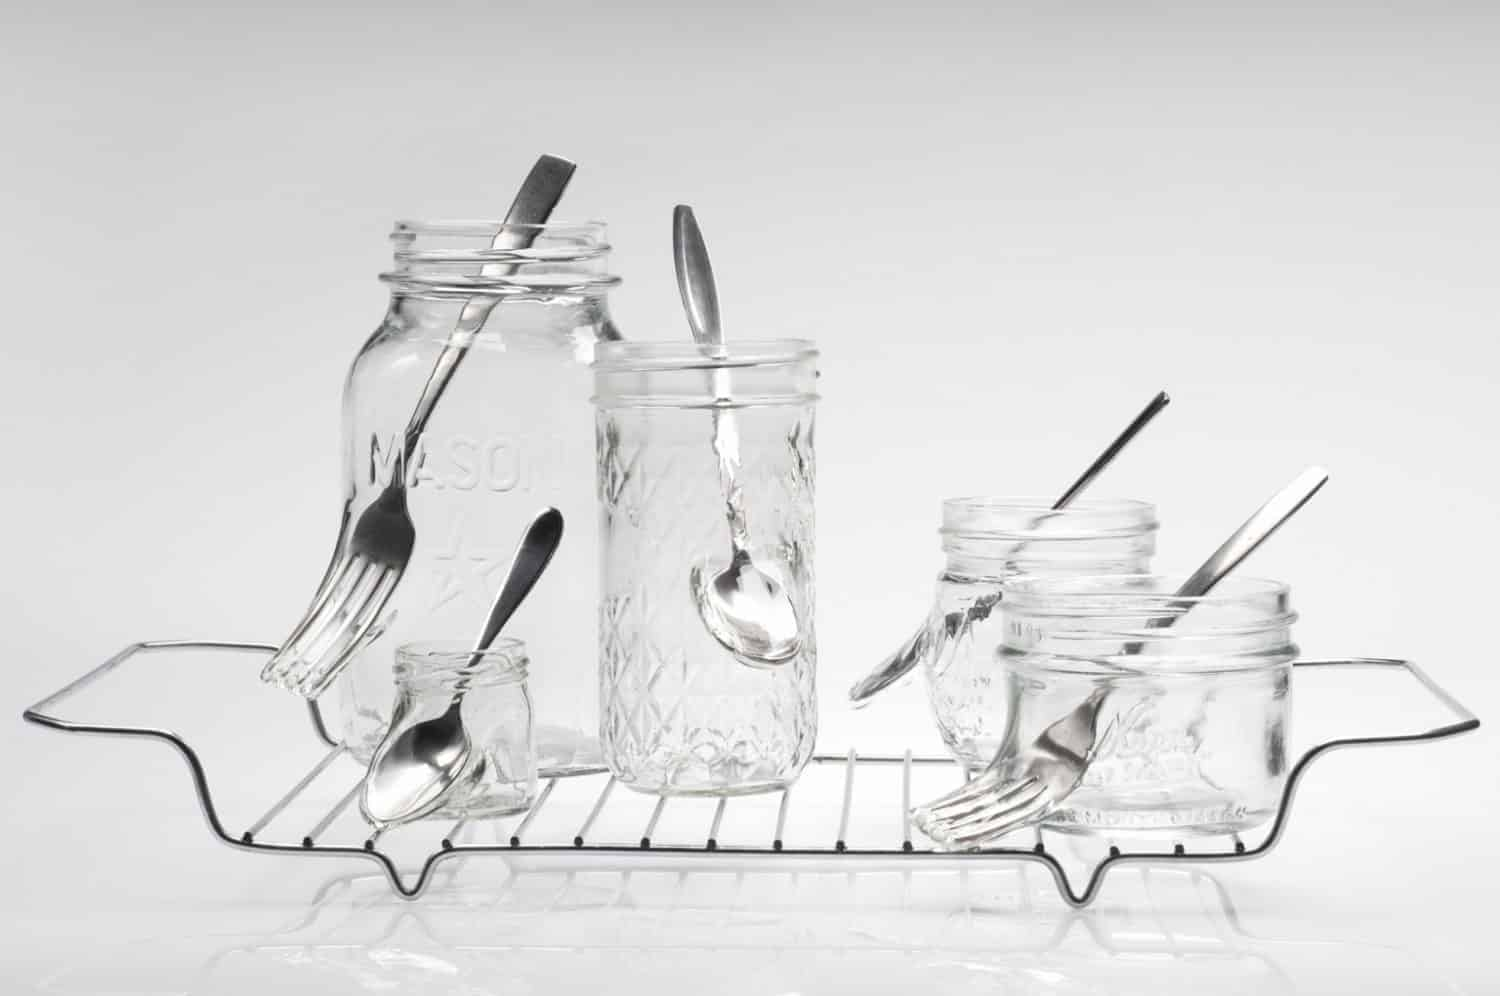 """Waste not want not,"" Jelly jars, cutlery, stainless steel, 8.75 x 16.25 x 9 inches, photo credit: Elizabeth Torgerson-Lamark"